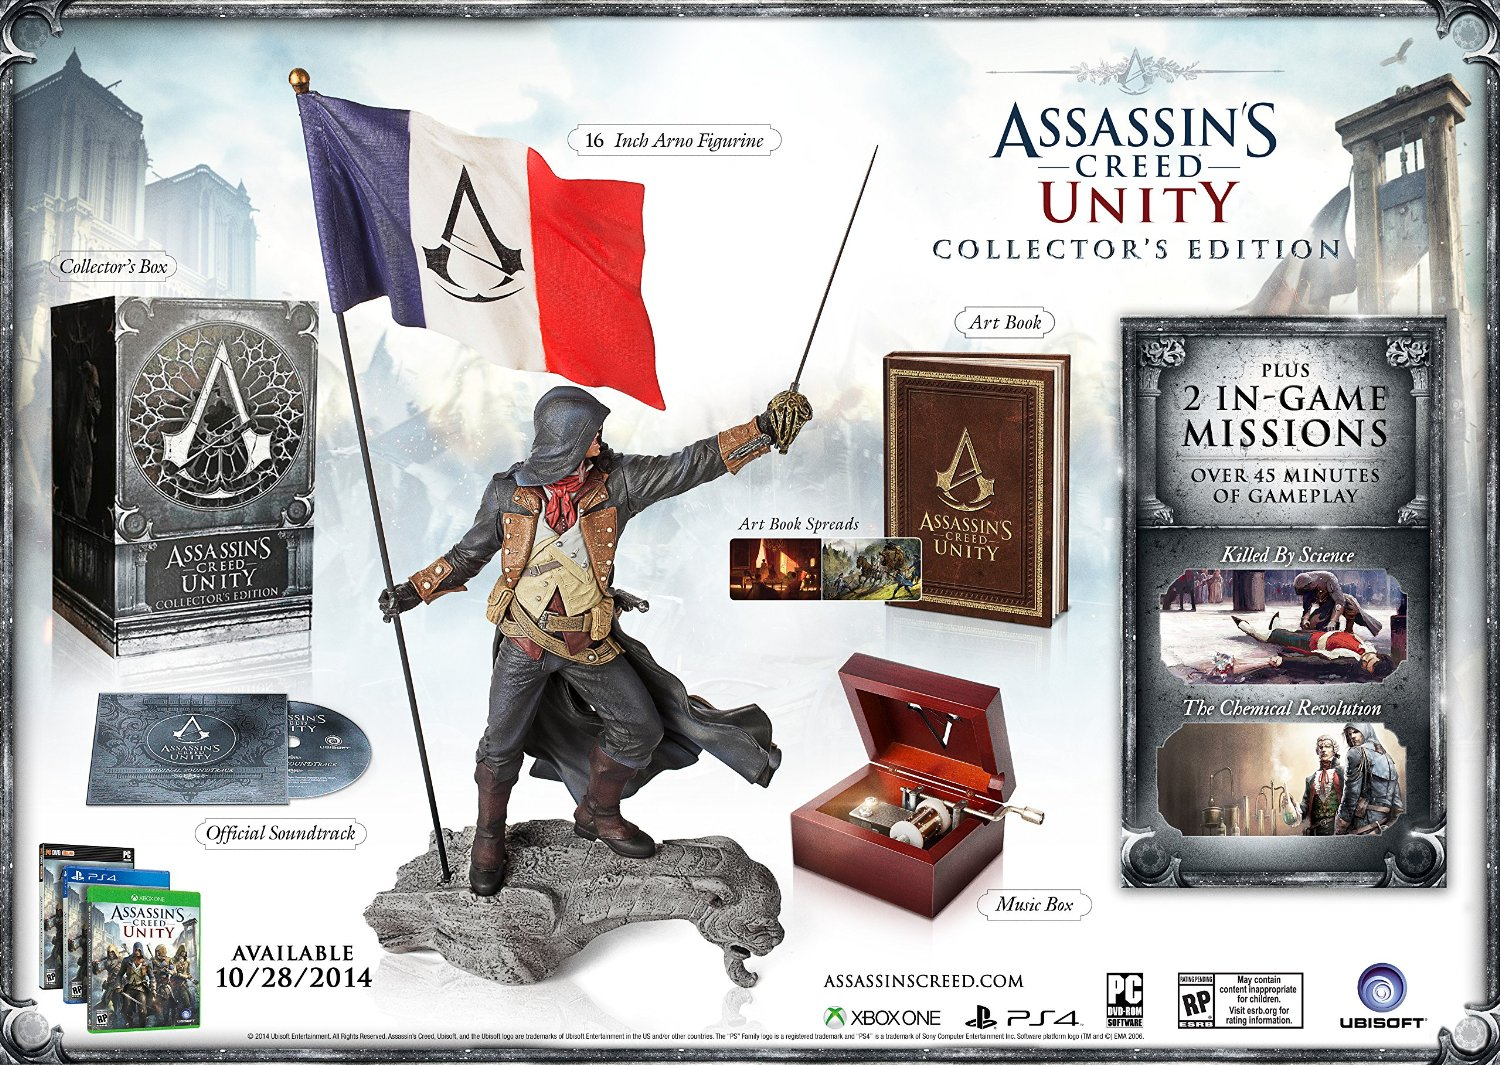 PS4 Assassin's Creed Unity Collector's Edition (PlayStation 4)